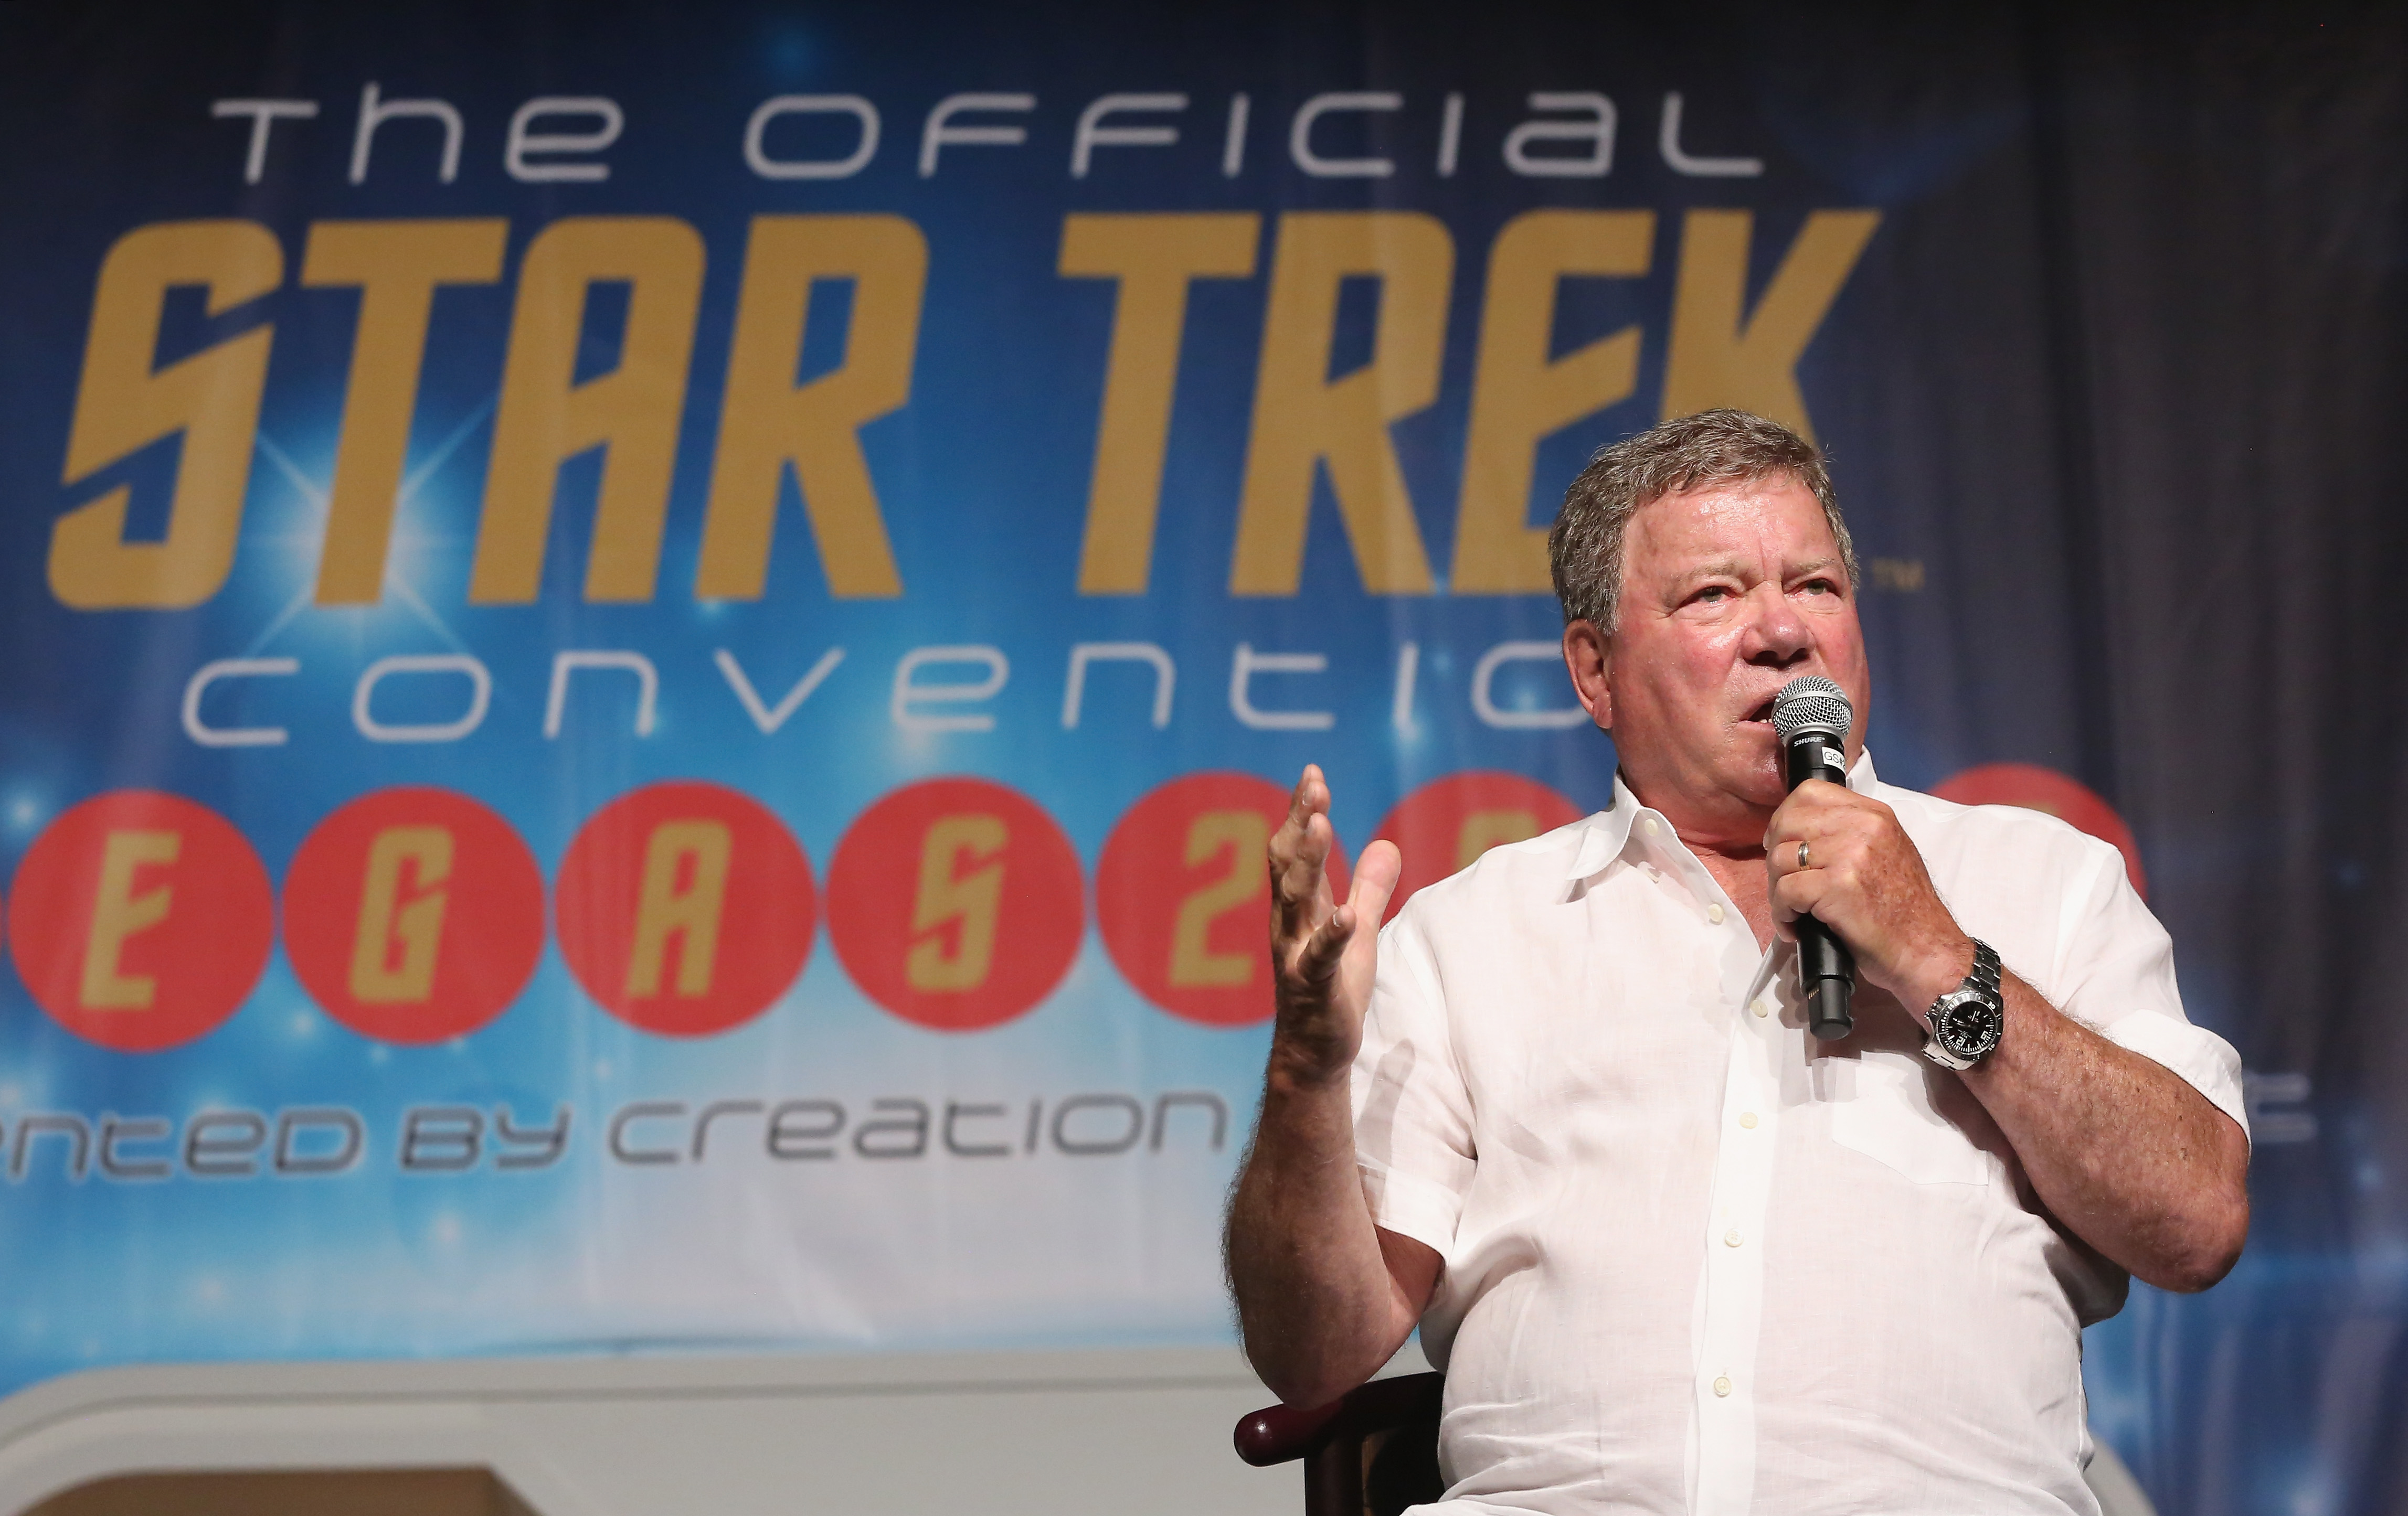 14th Annual Official Star Trek Convention